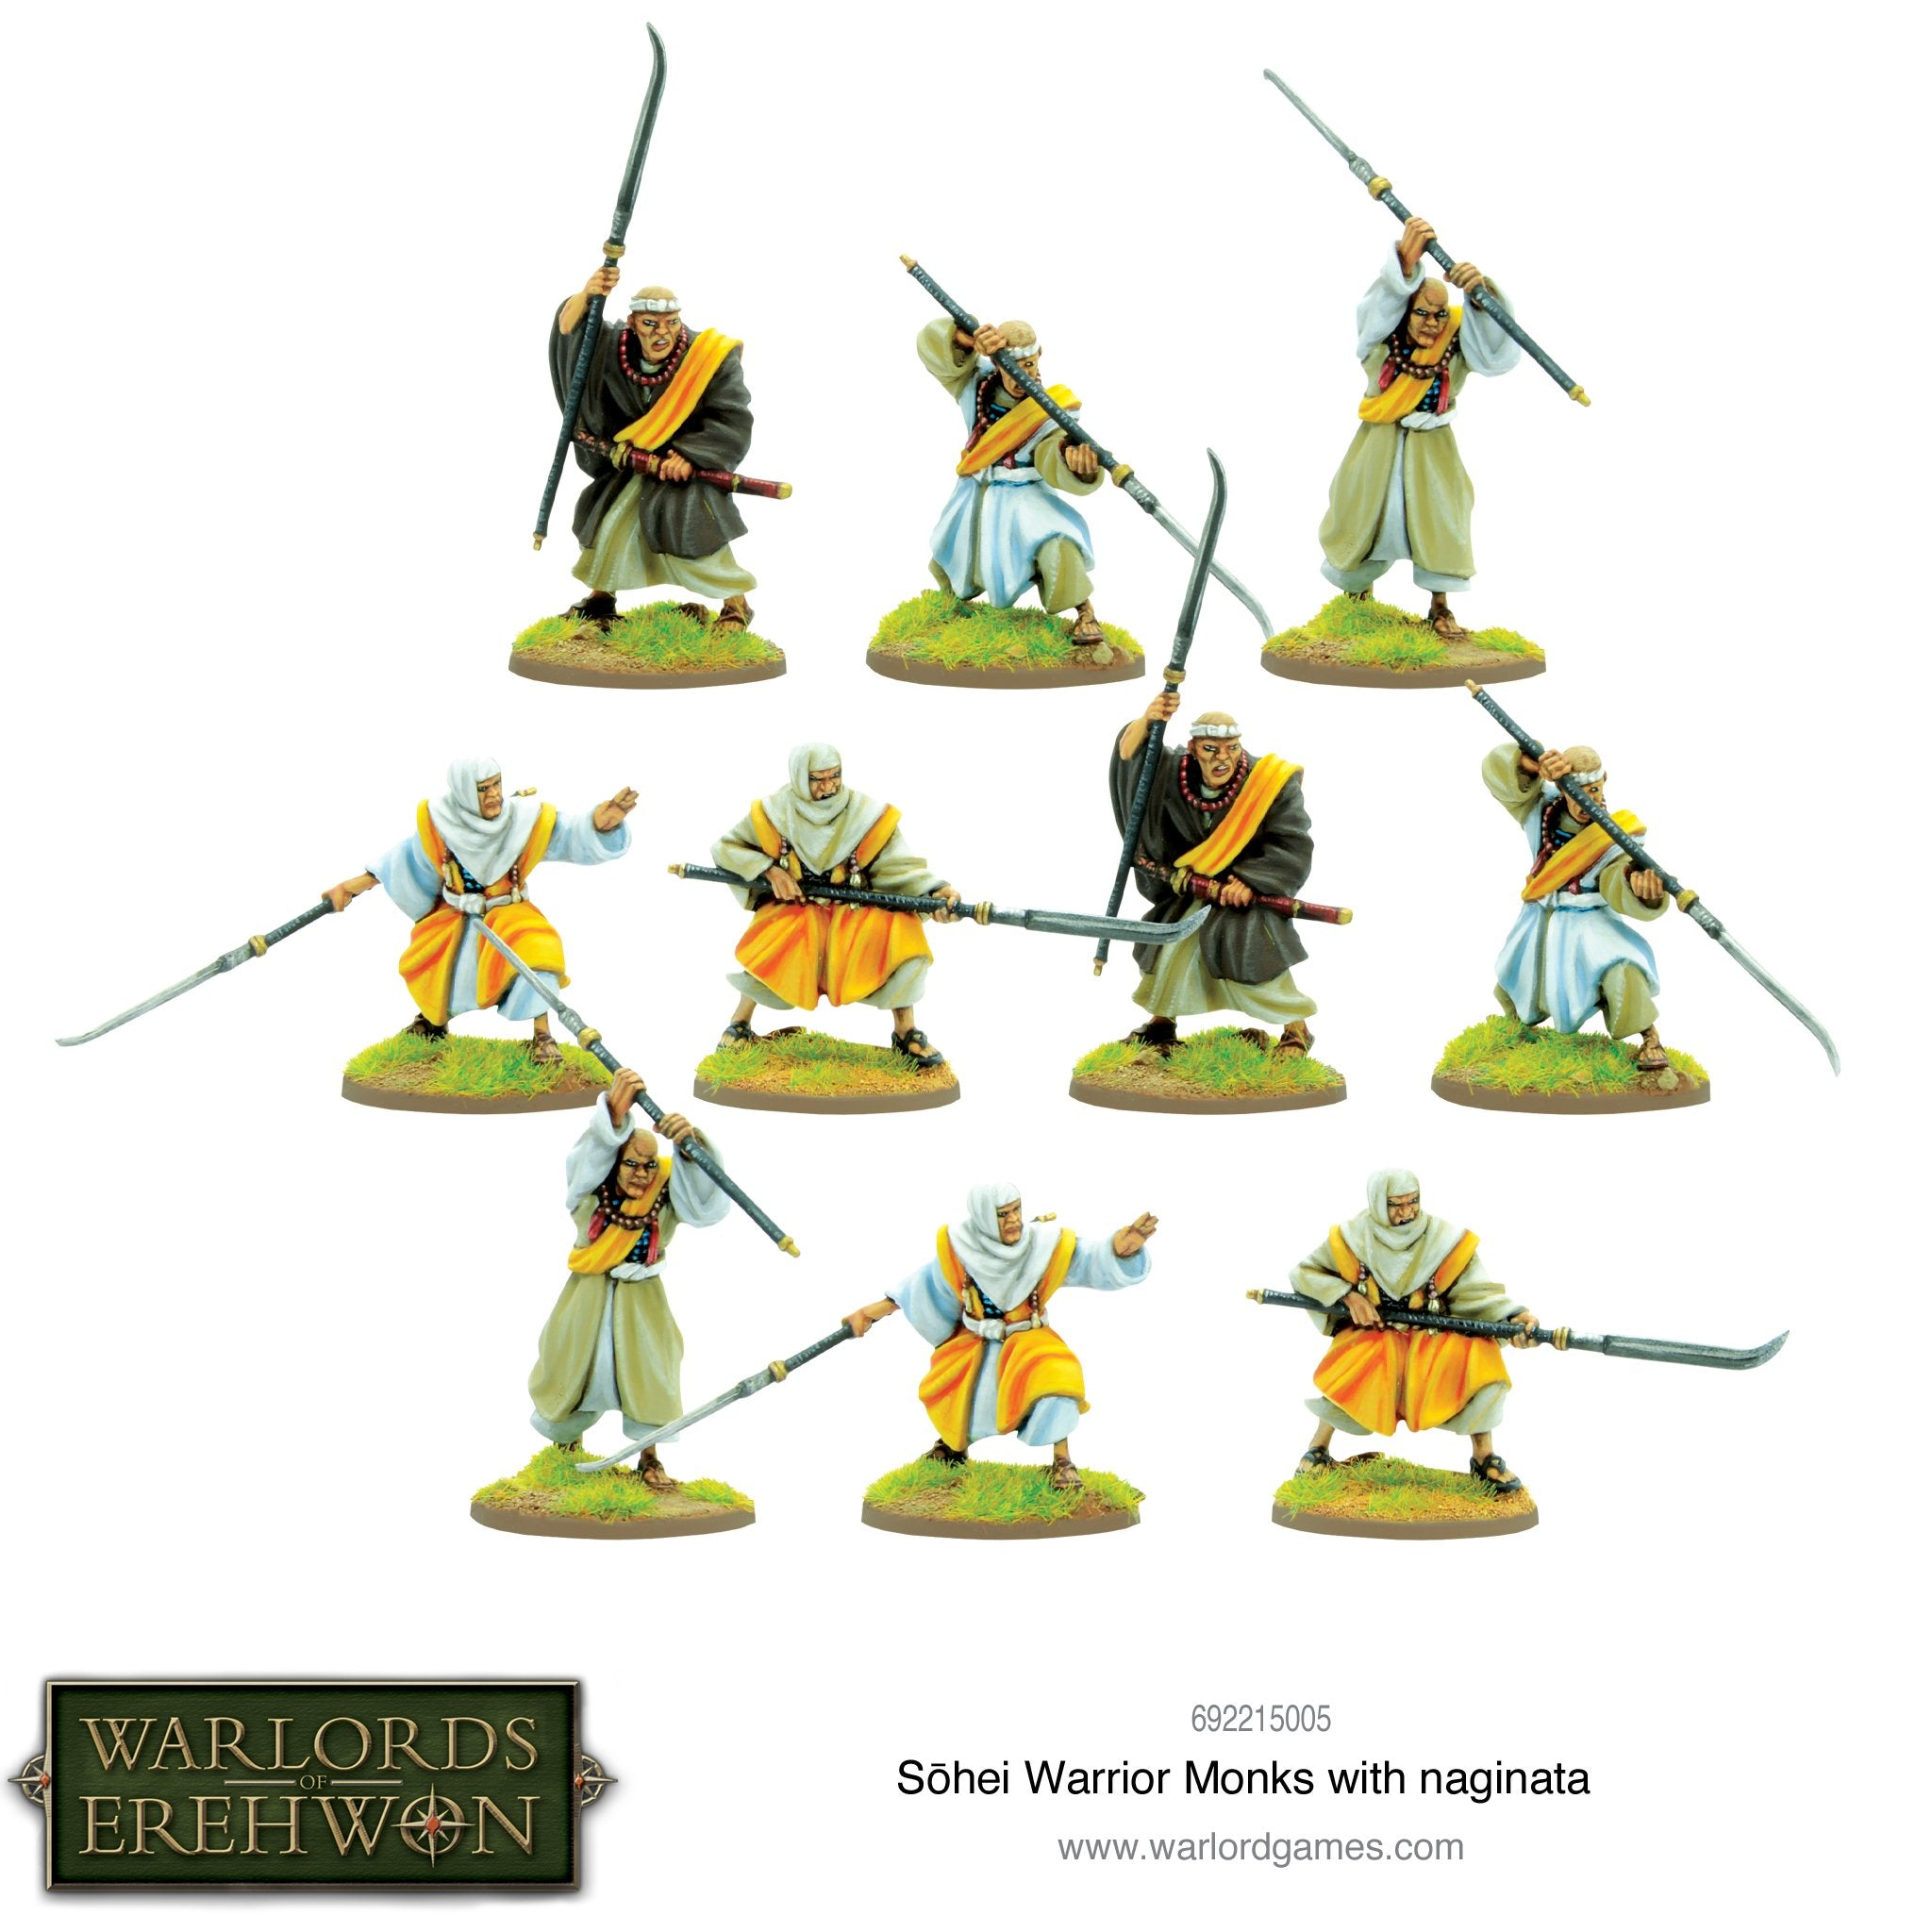 Warlord of Erehwon: Sohei Warrior Monks with naginata